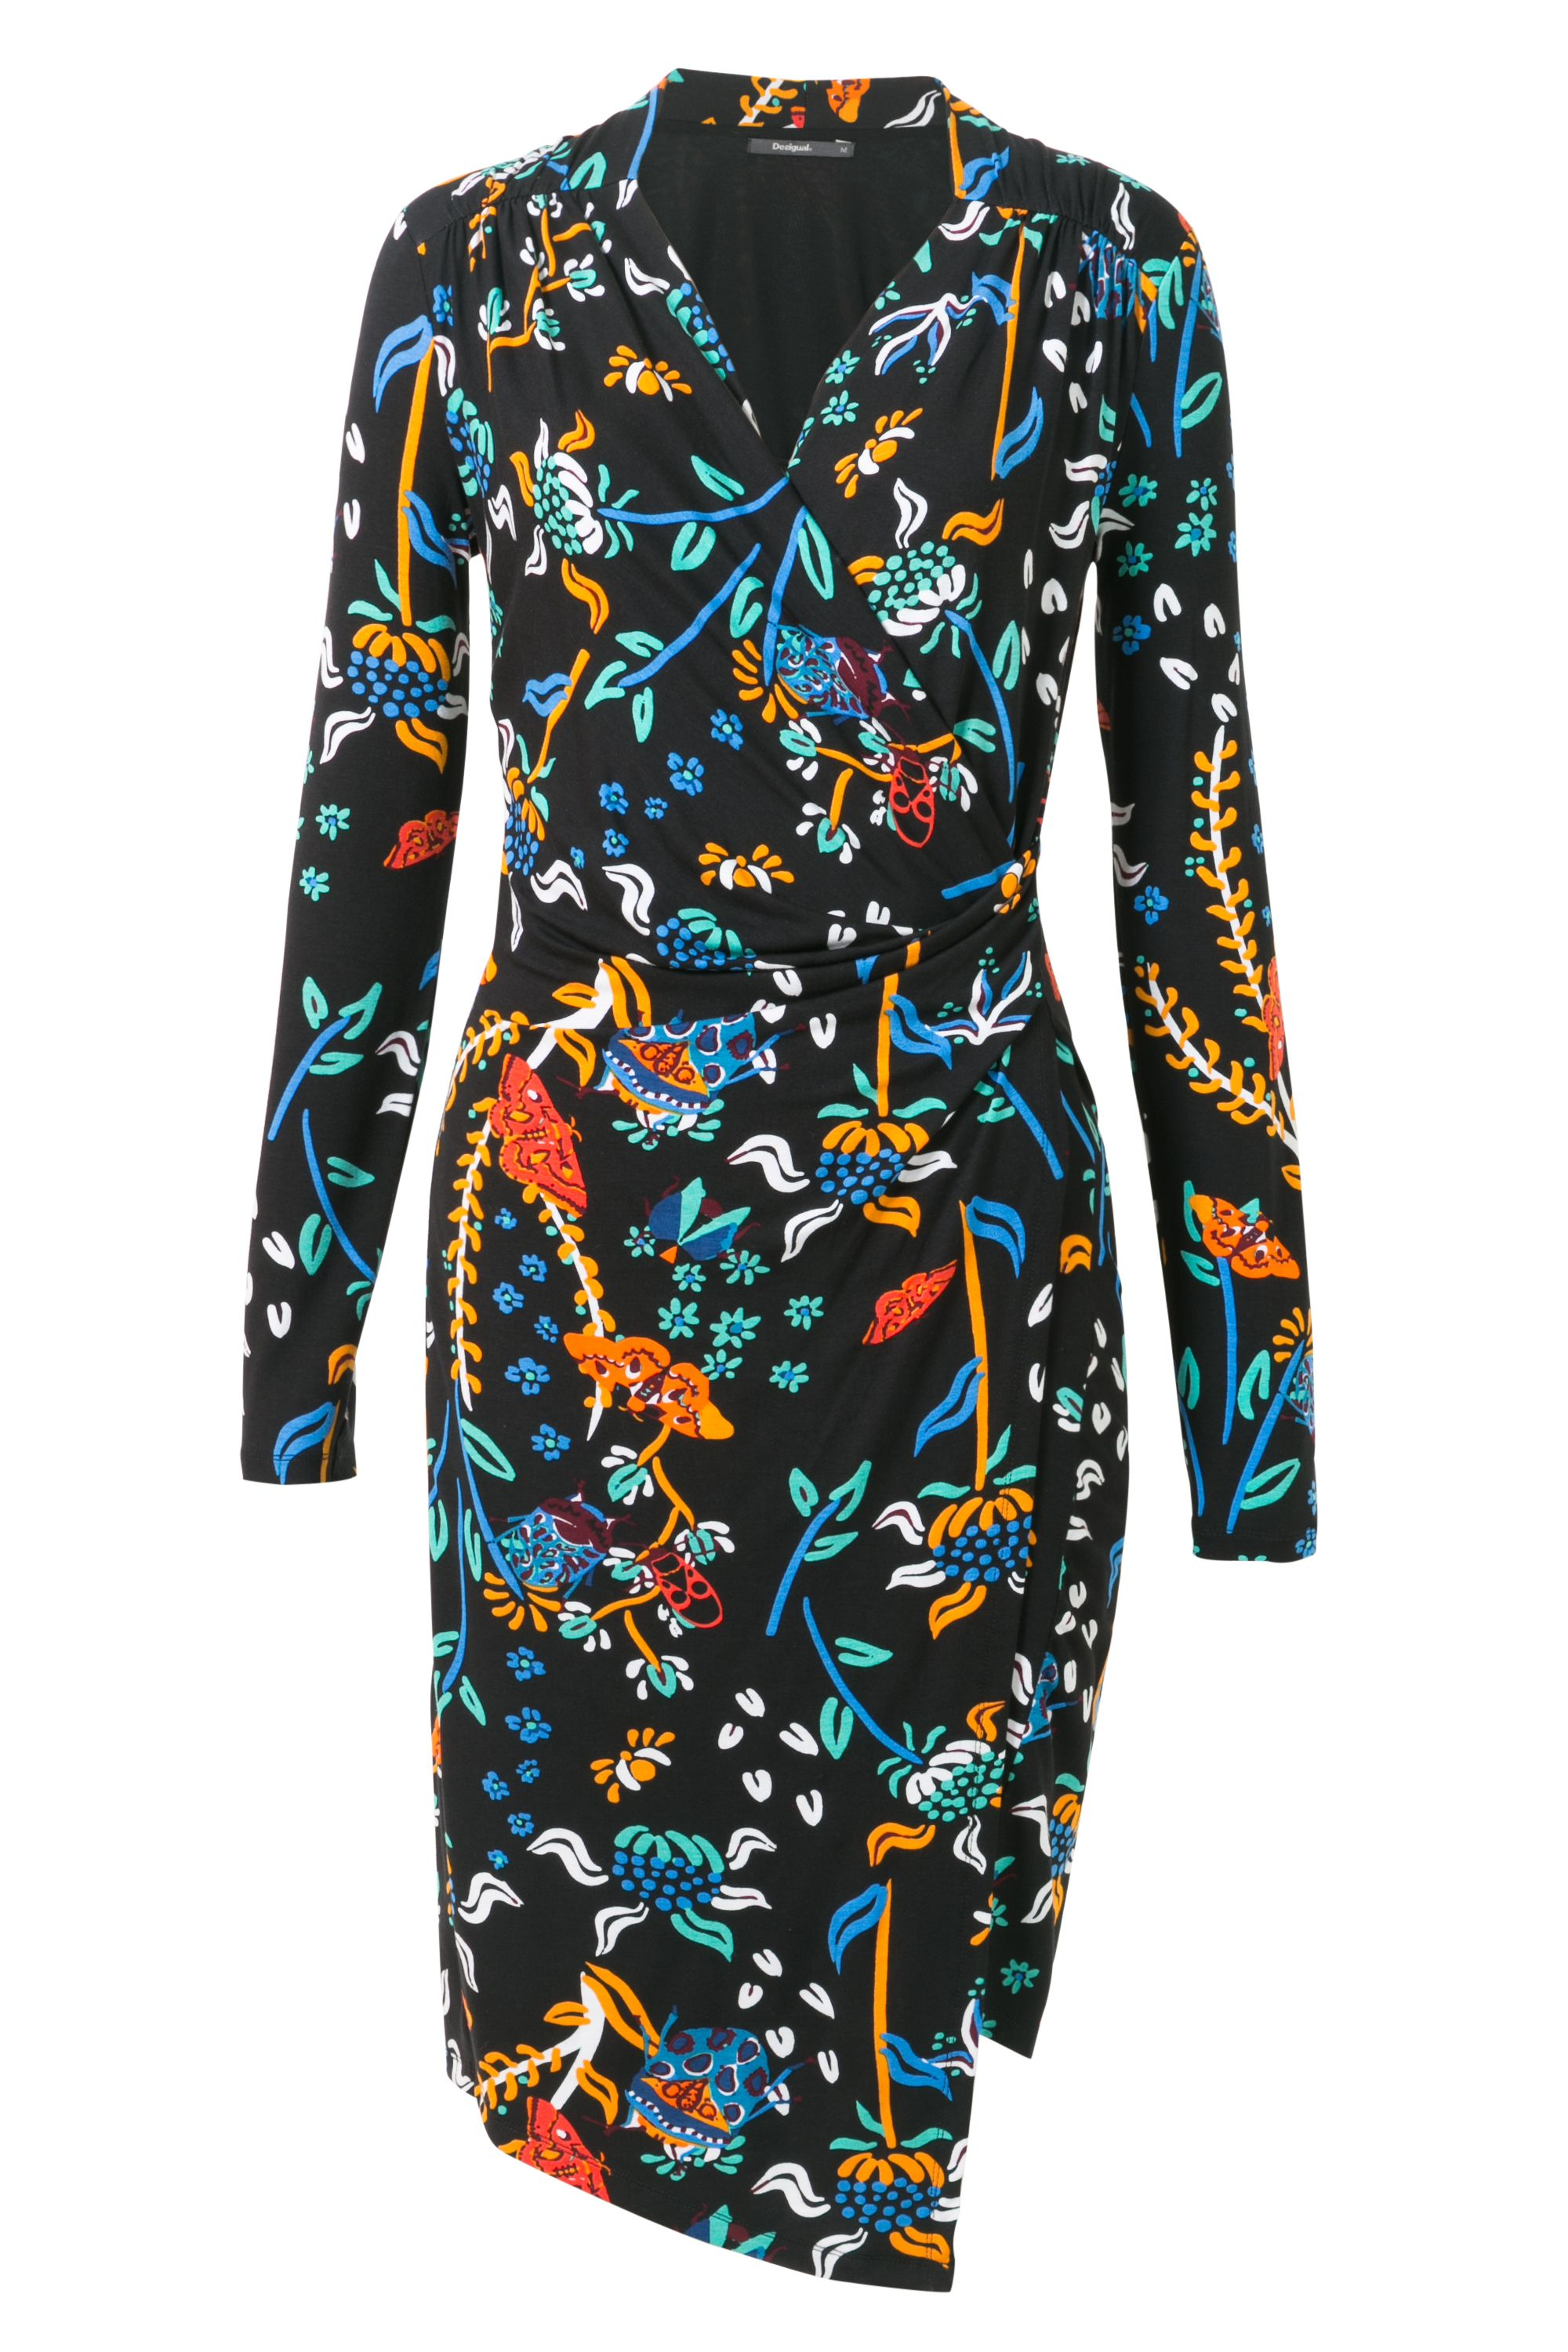 Desigual Dress Bridie, Black